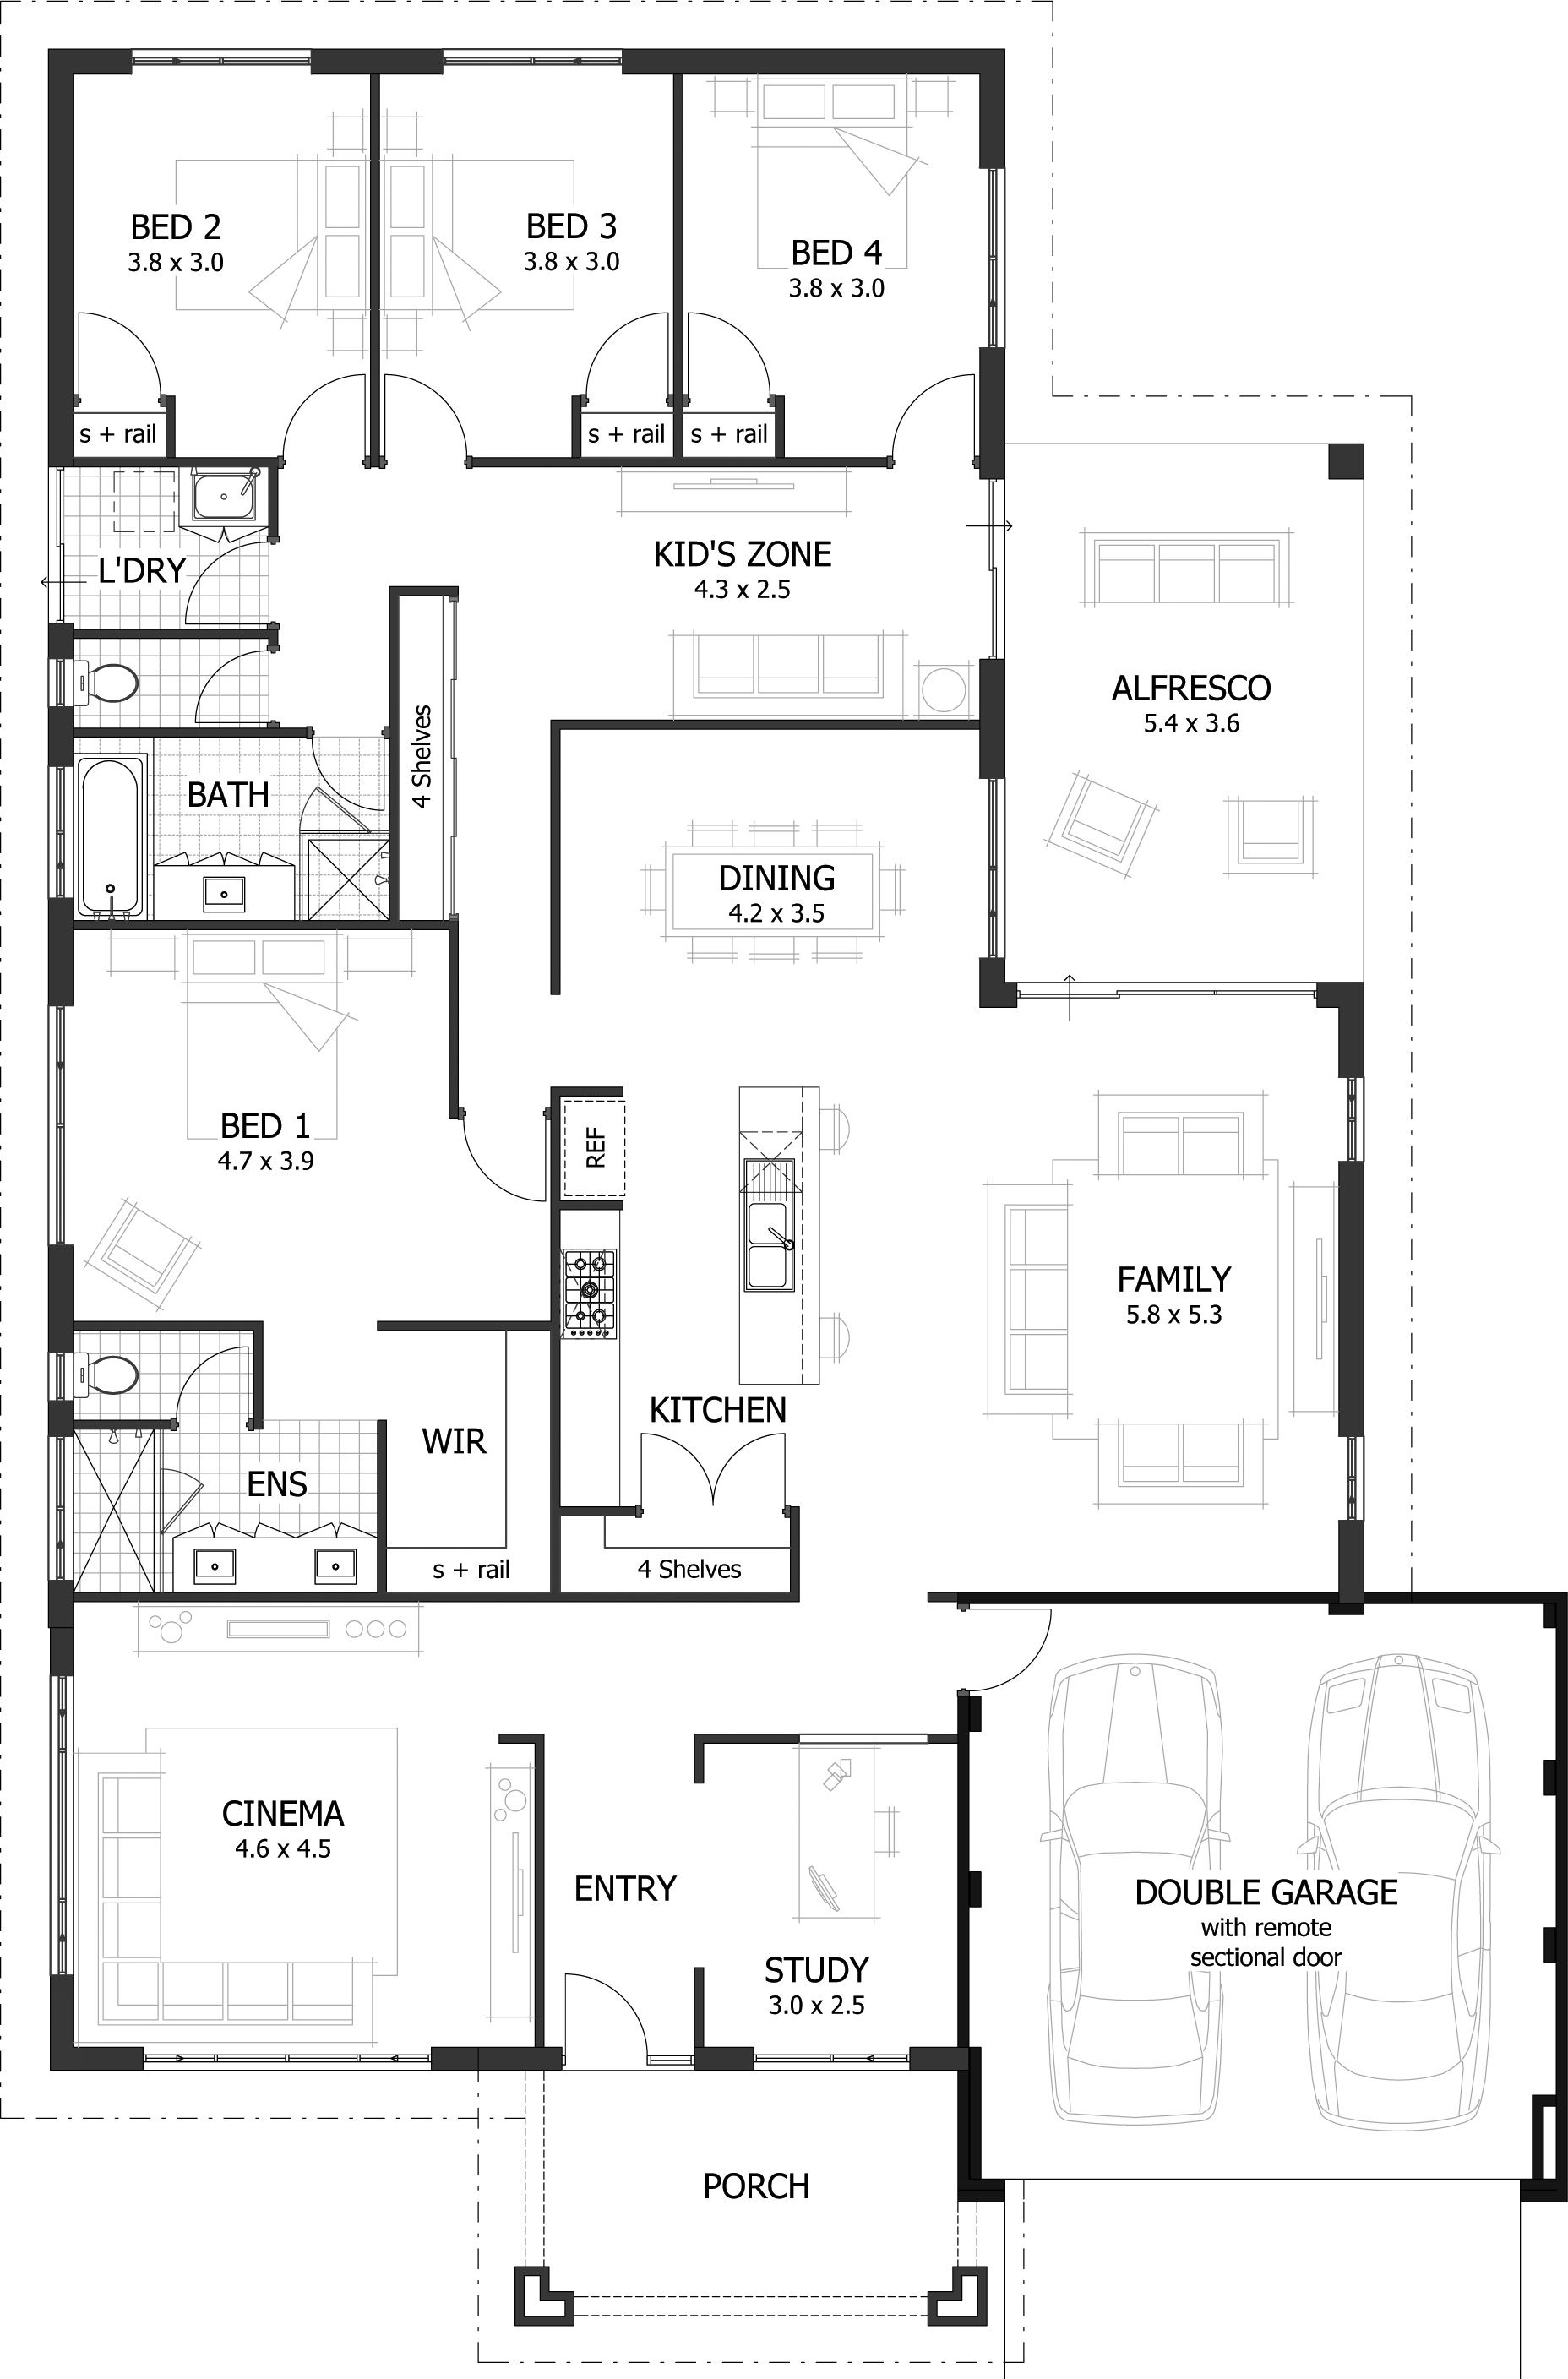 4 Bedroom House Plans Home Designs 4 Bedroom House Plans Bedroom House Plans 5 Bedroom House Plans